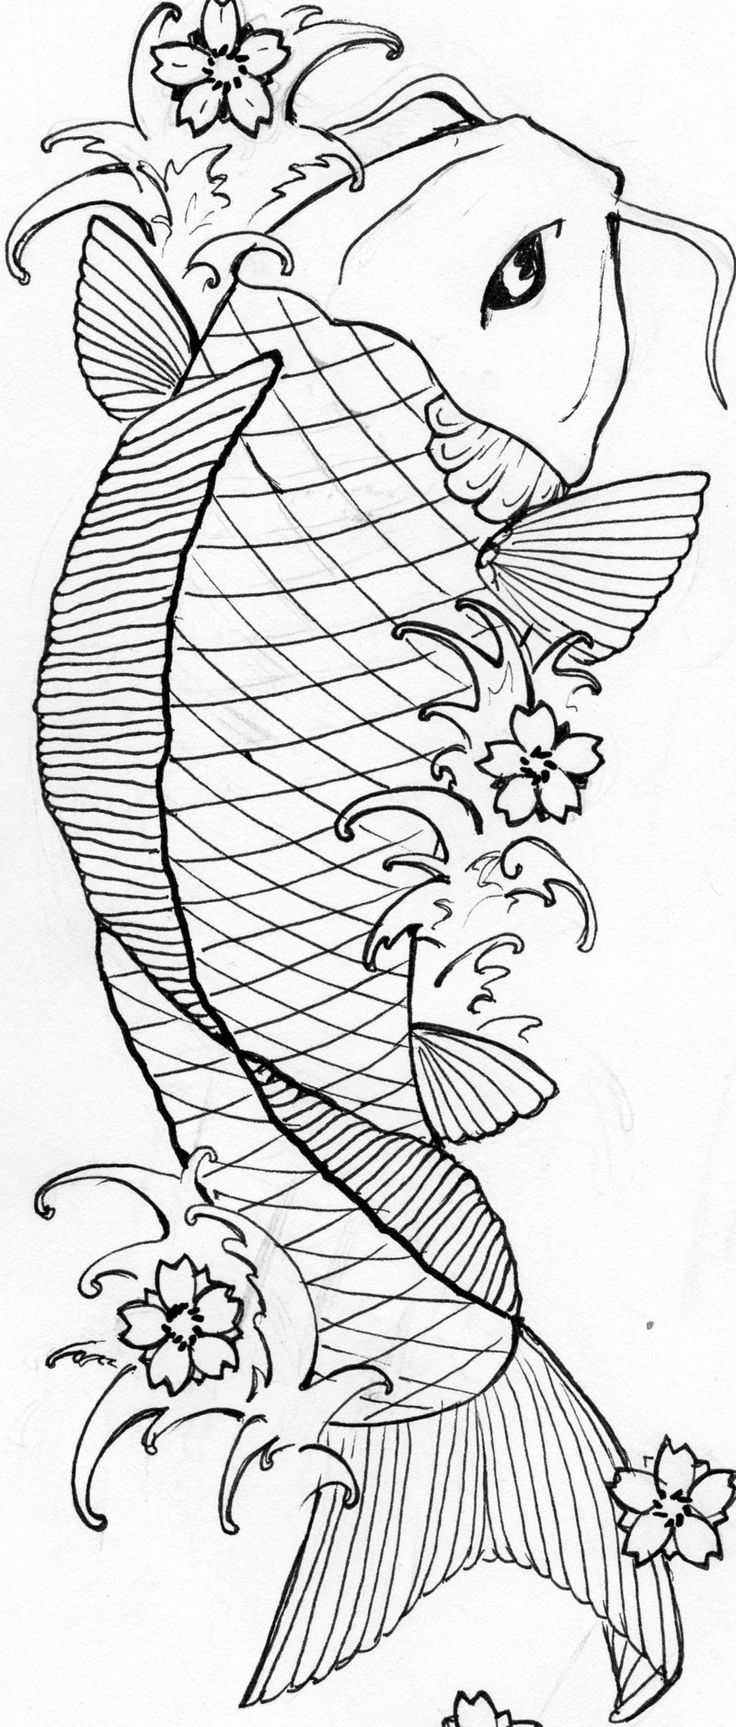 The tattoo coloring book megamunden - Color For Tranquility Koi Sketch